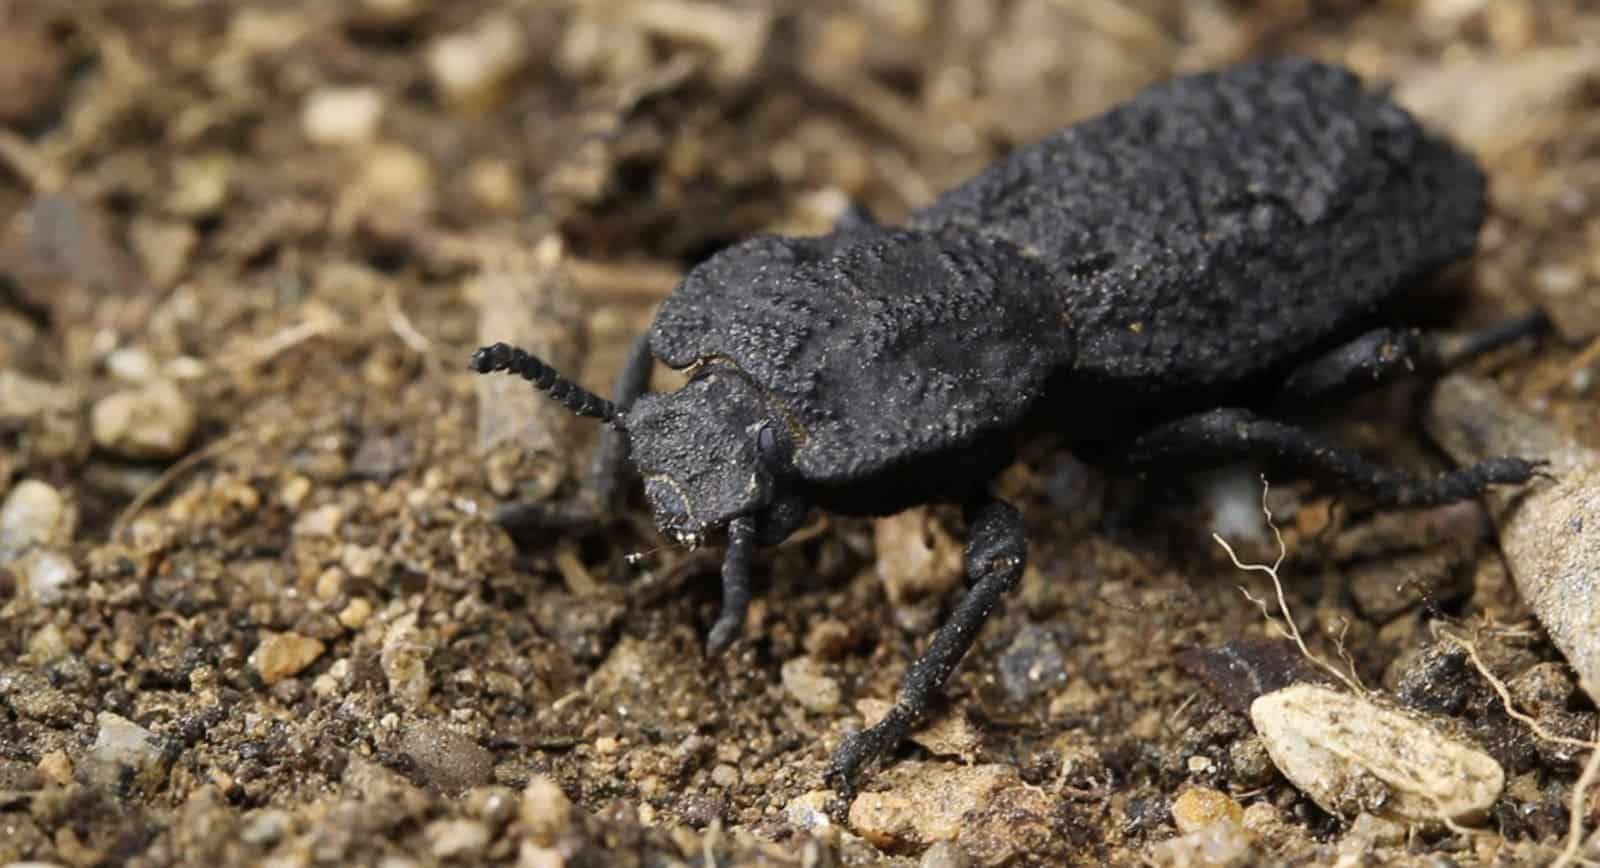 This beetle's armor can survive being run over by a car. Here's why it's nearly indestructible